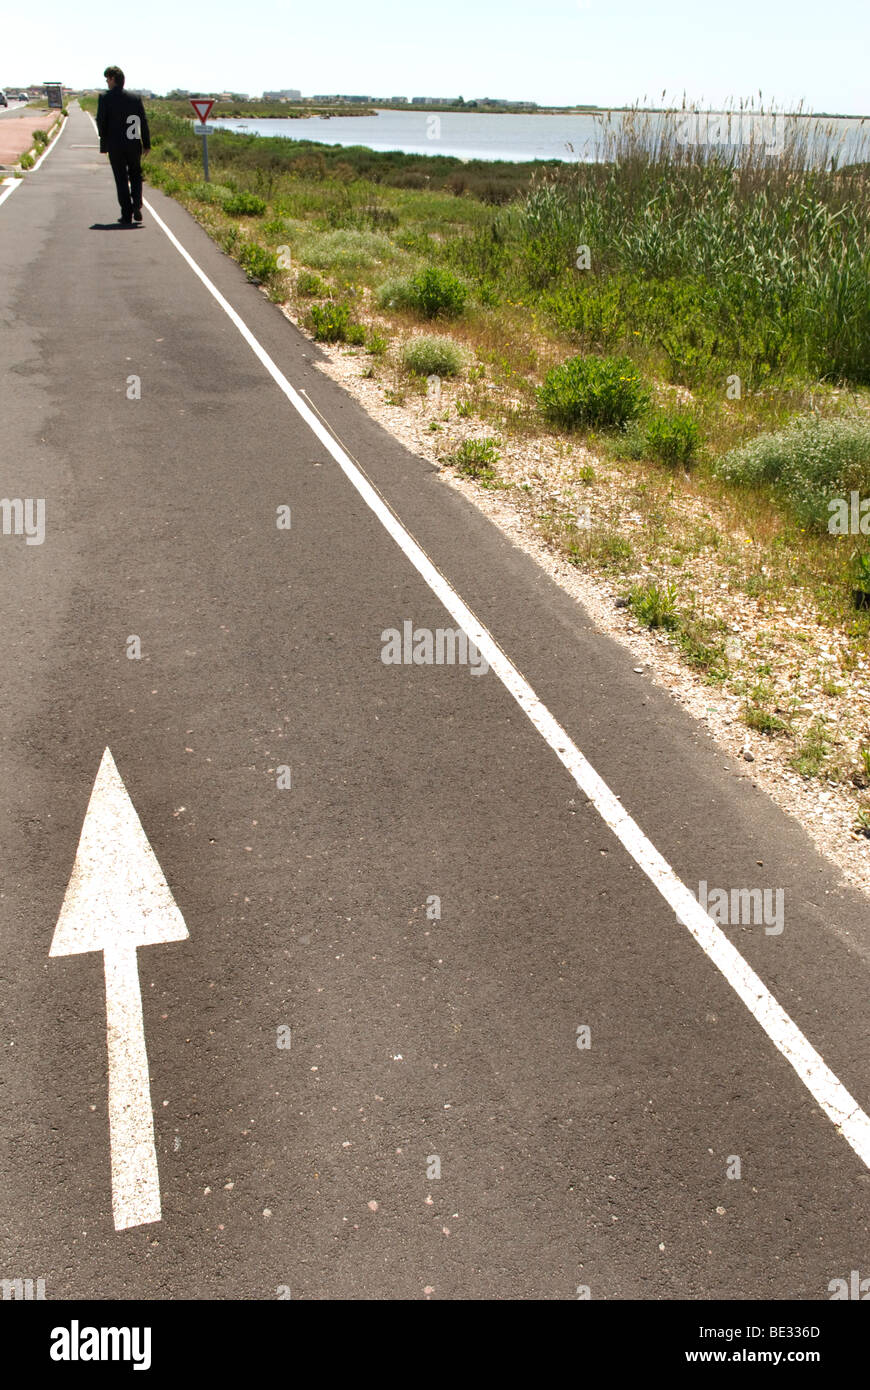 man dressed in dark suit walks away down coastal path with white arrow on it - Stock Image